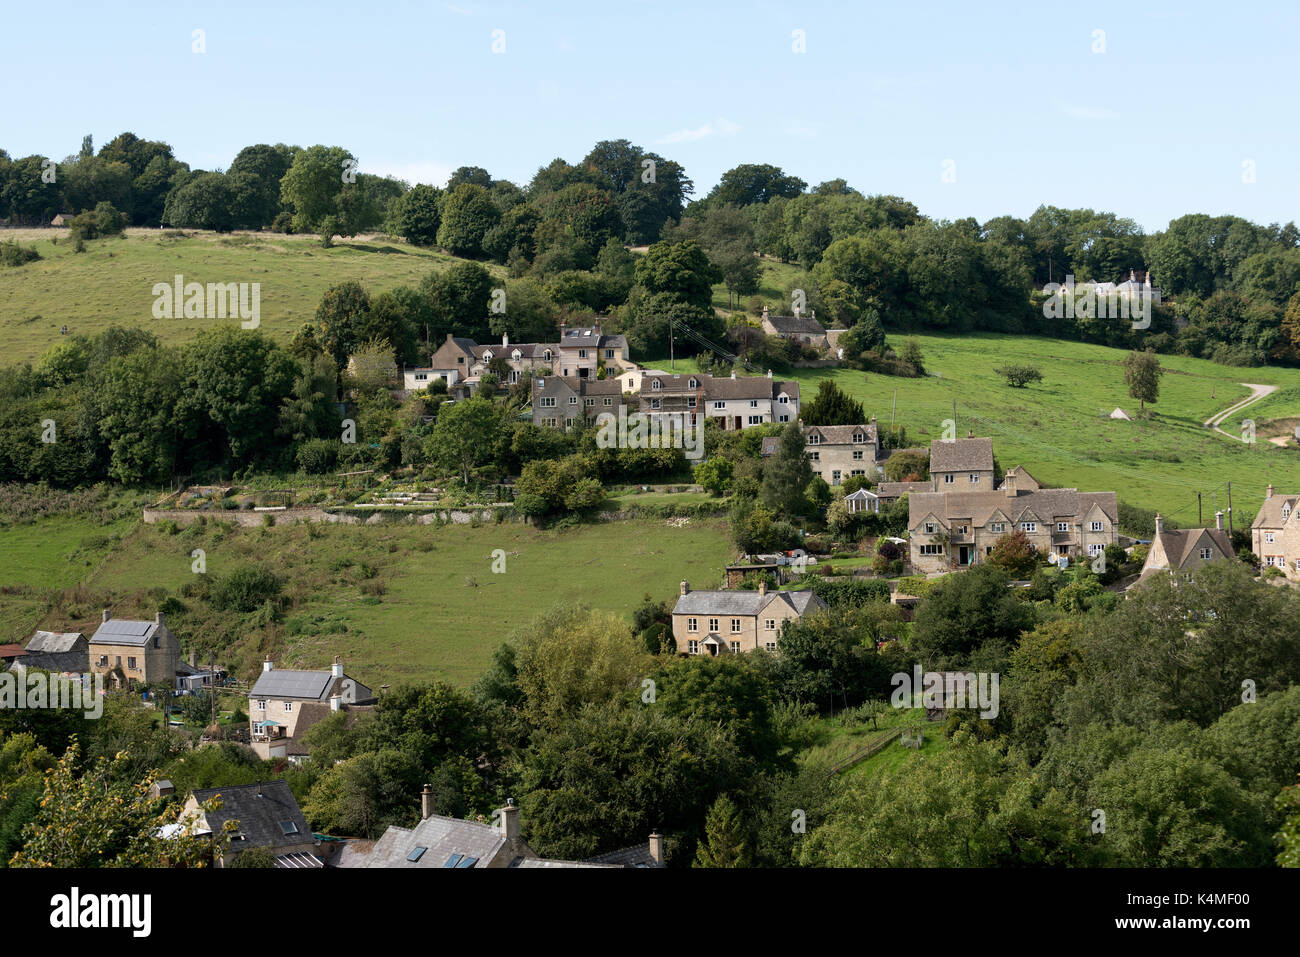 Overview of the Cotswold village of Burleigh near Stroud Gloucestershire England UK - Stock Image